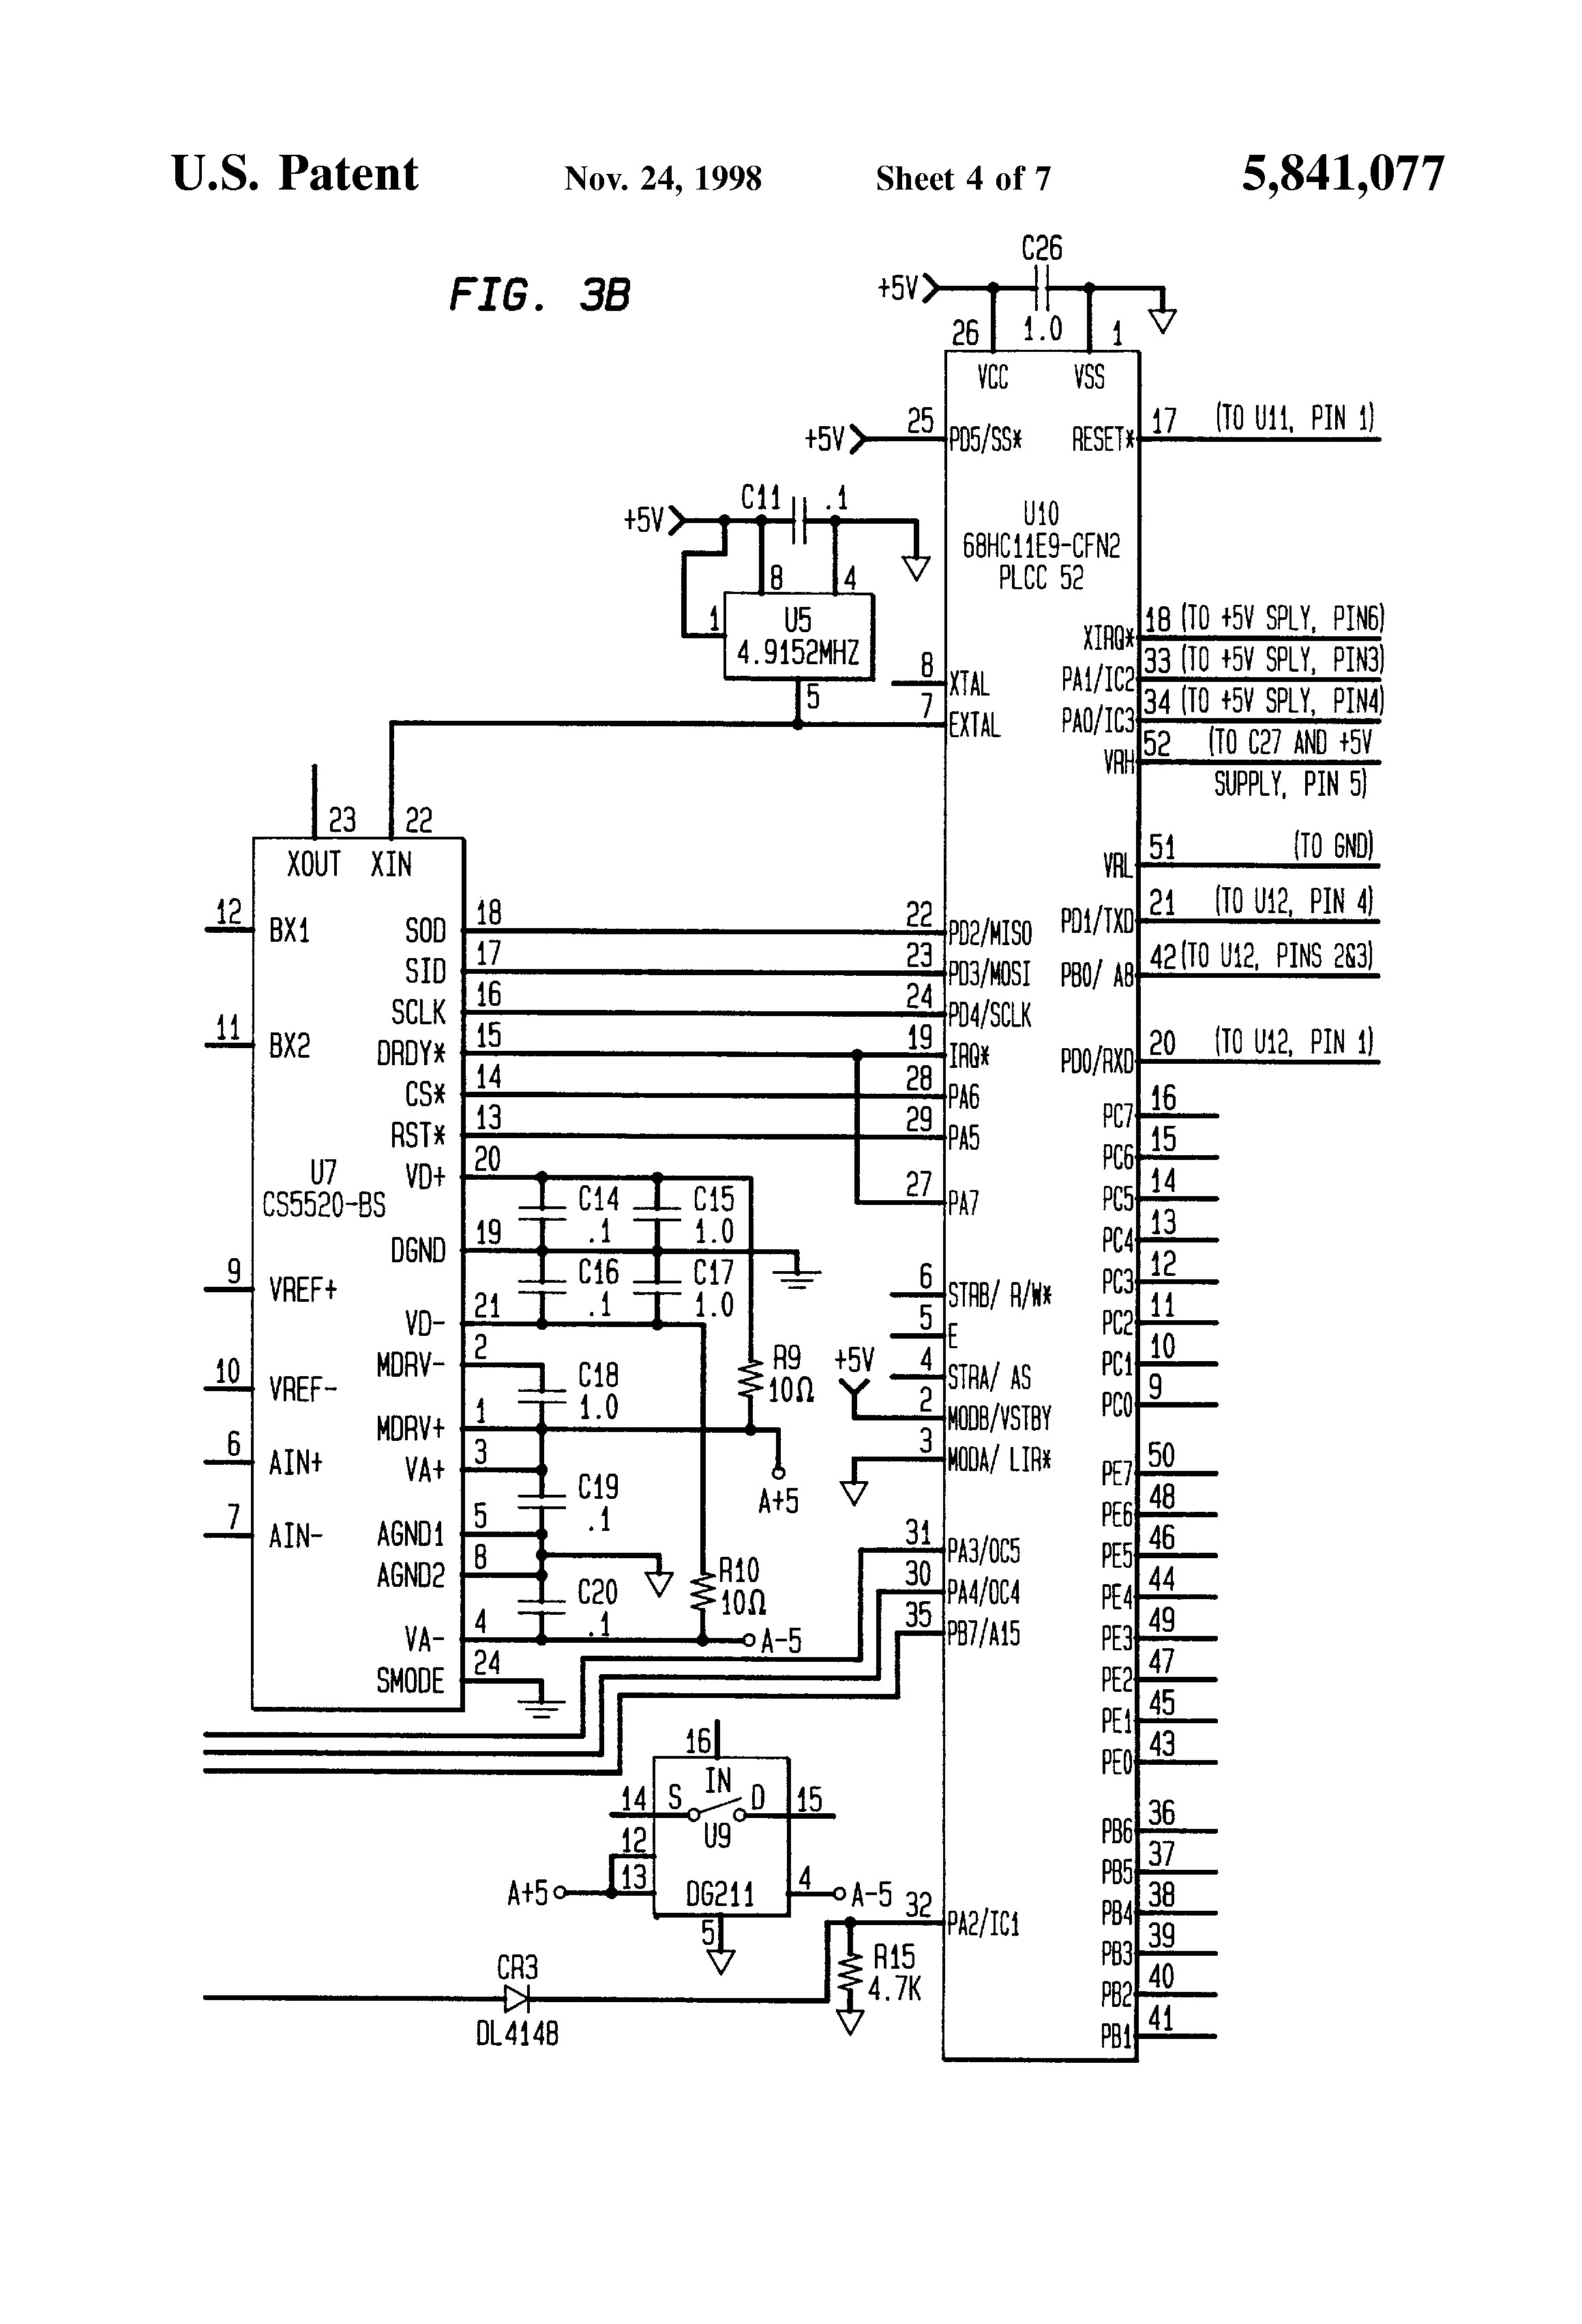 load cell junction box wiring diagram Download-Wiring Diagram for Junction Box New Load Cell Wiring Diagram 10-h